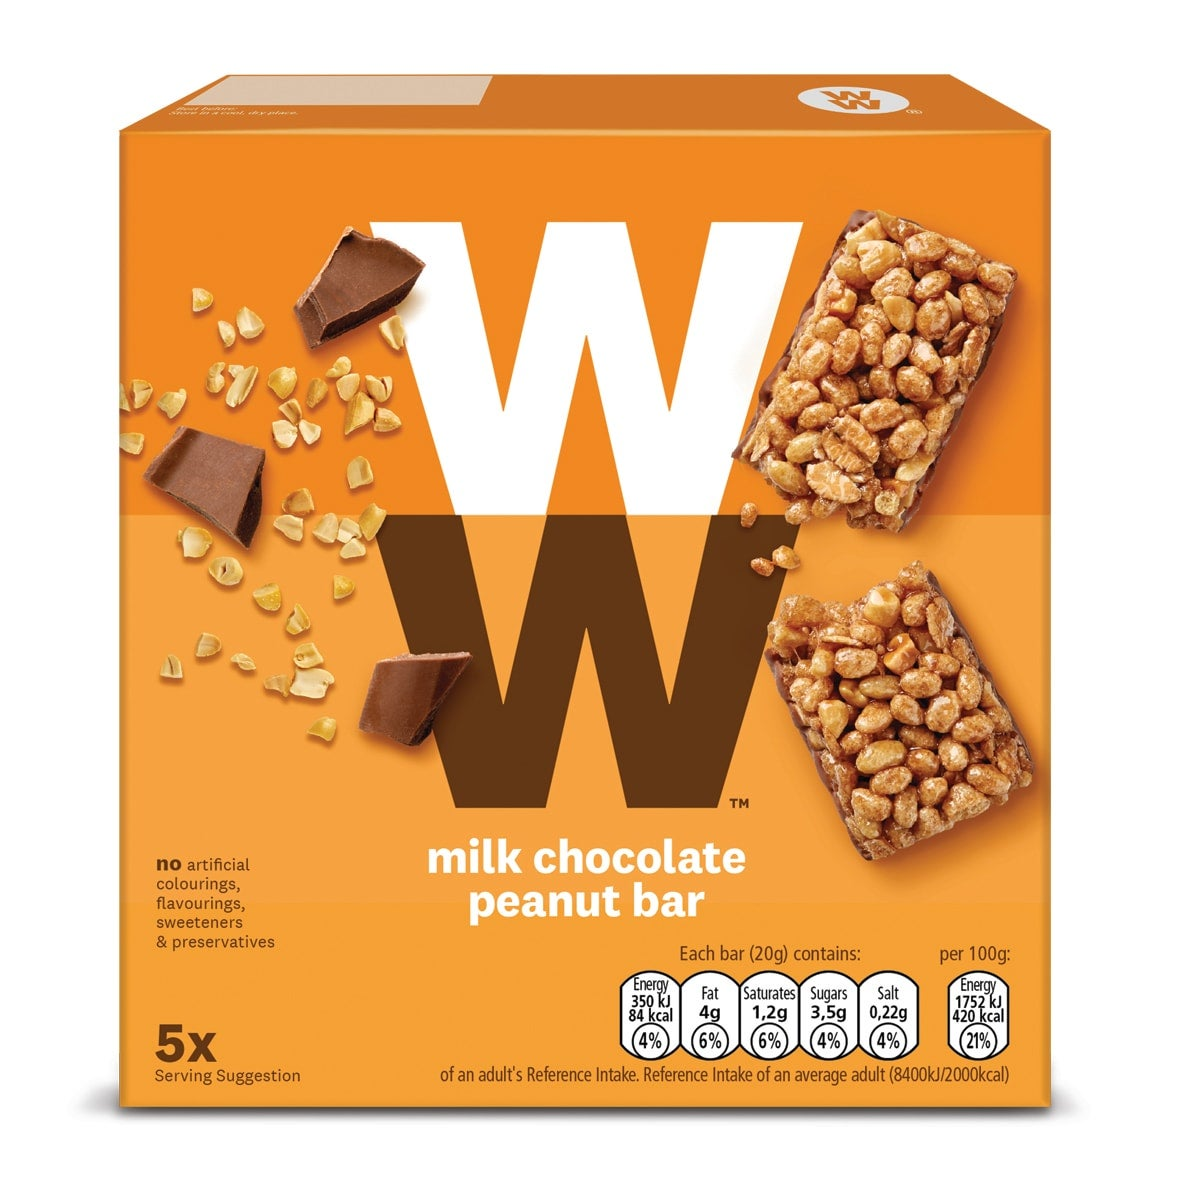 Box of 5, WW Milk Chocolate Peanut Bar, mixed cereal bar with chopped and roasted peanuts, dipped in milk chocolate, 3 SmartPoints values, suitable for vegetarians